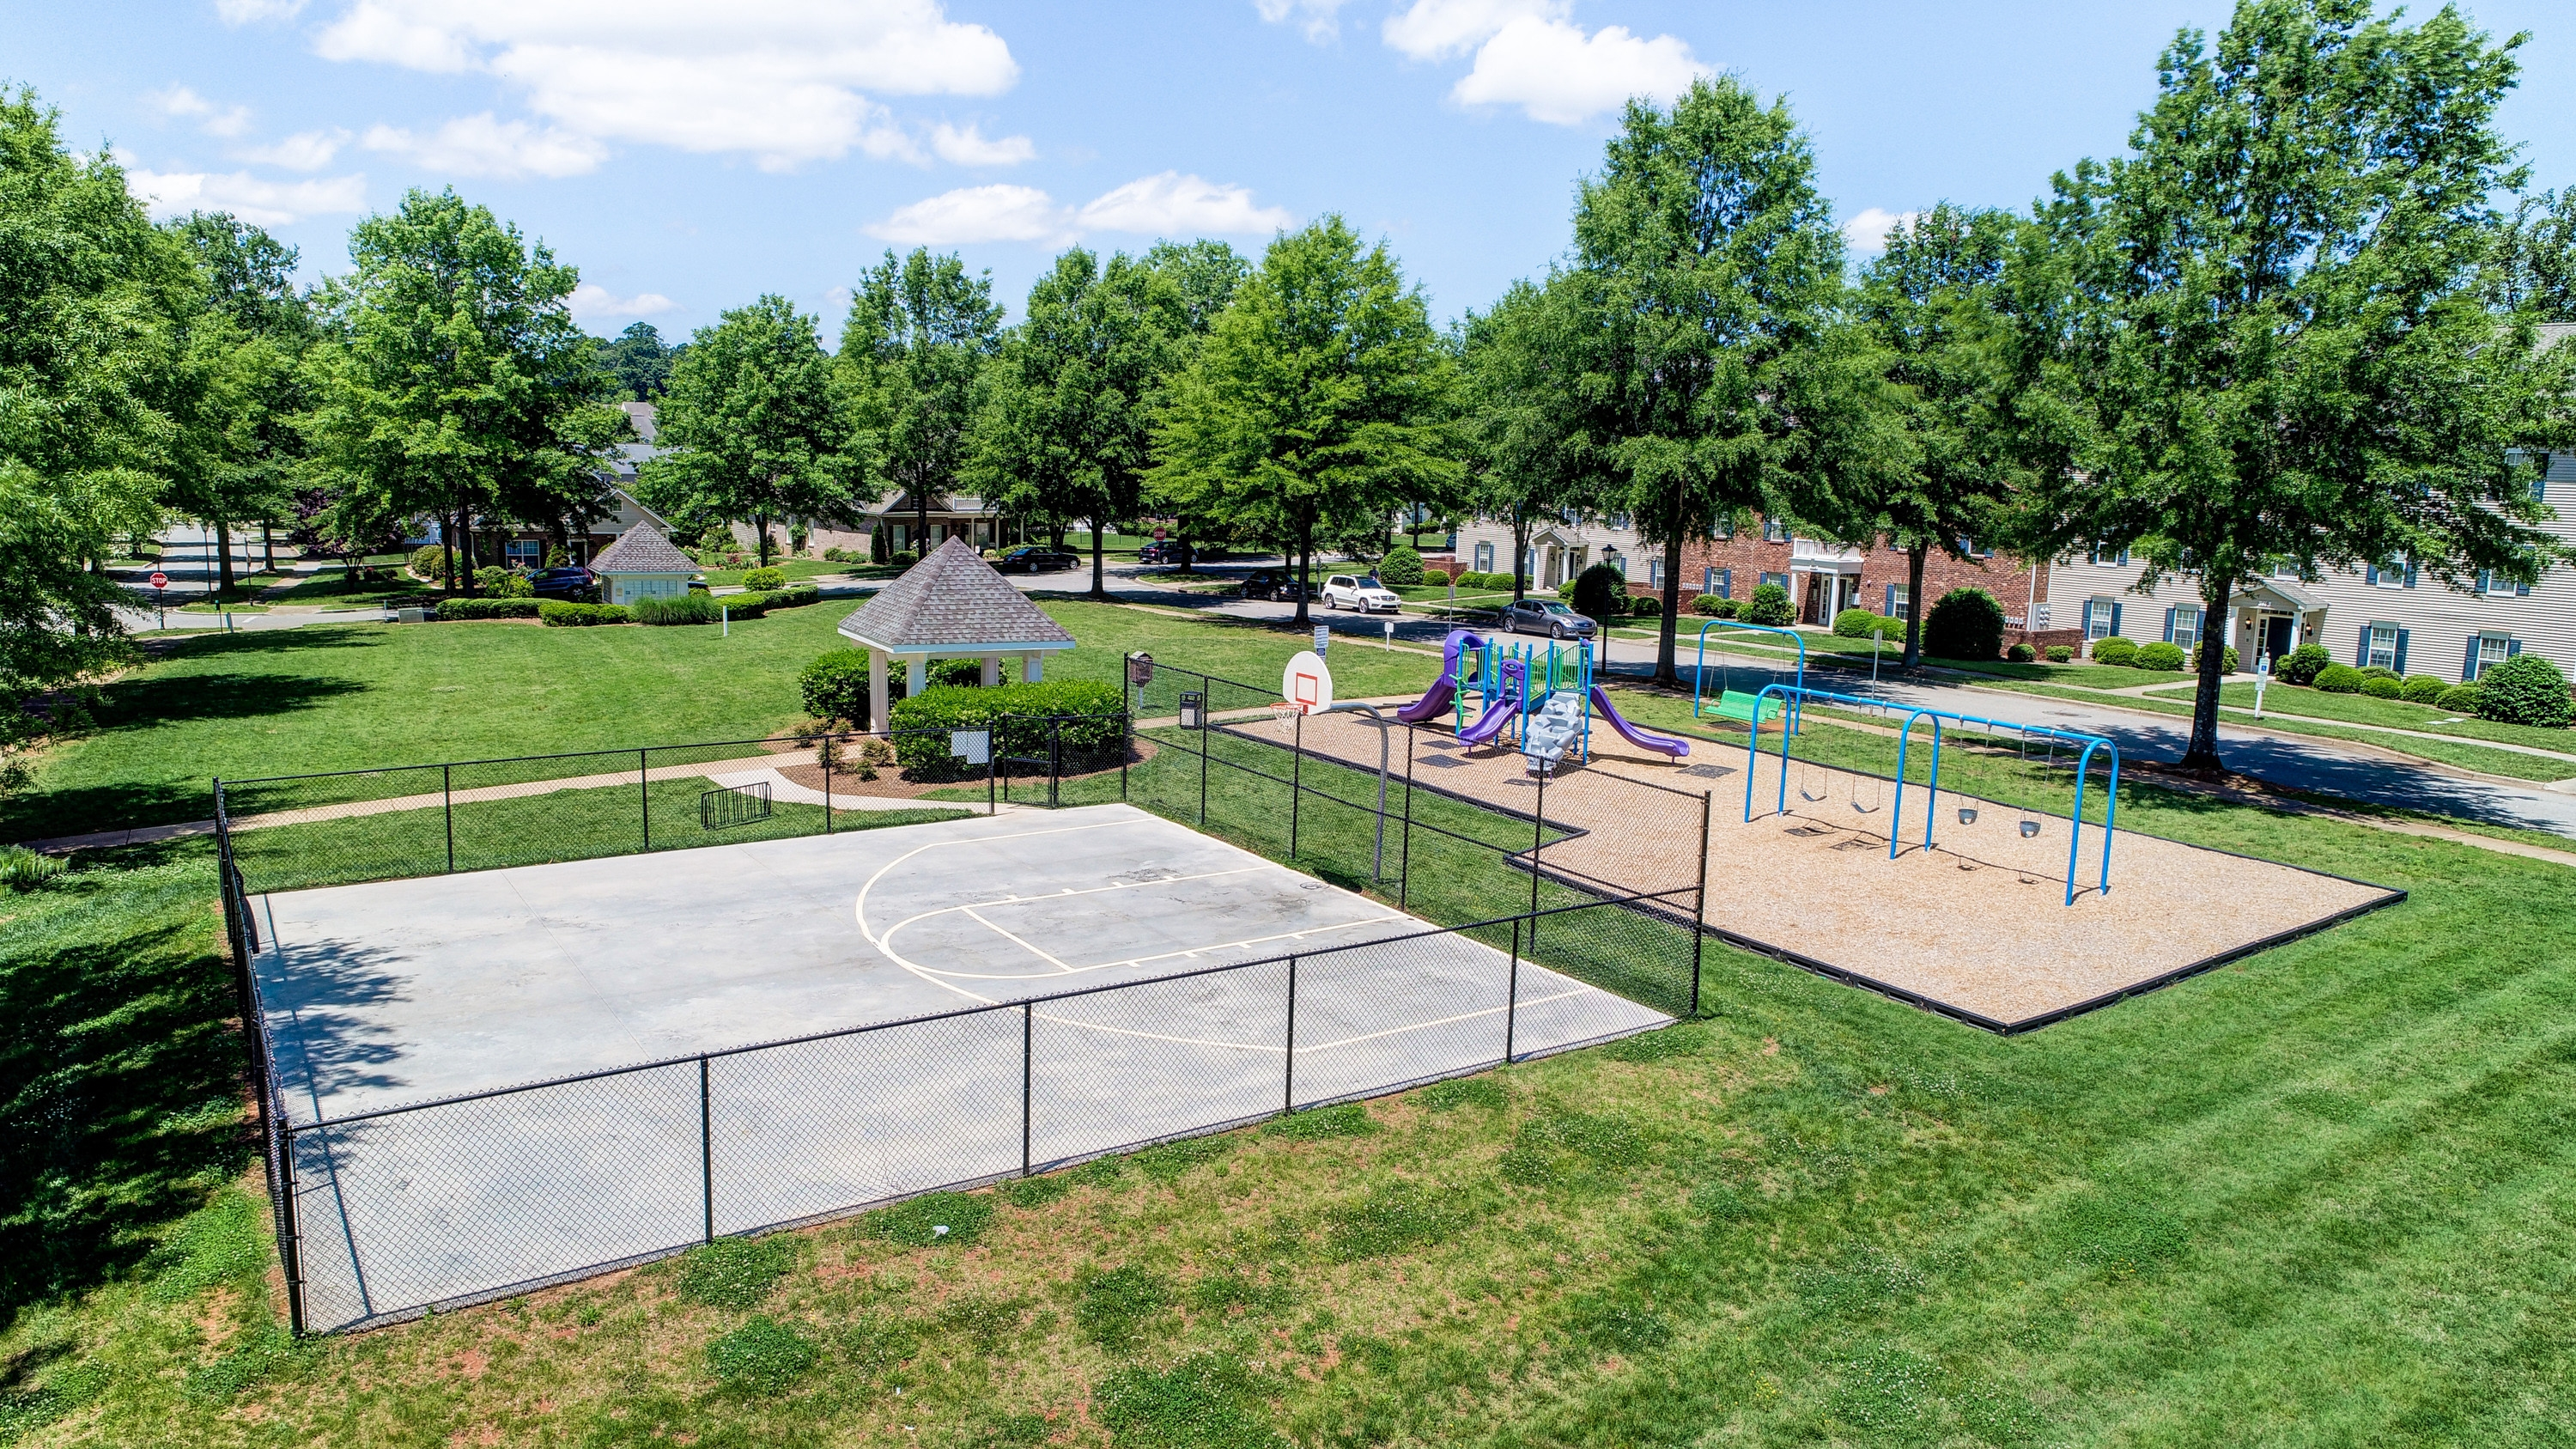 Kinderton Sports Court and Playground